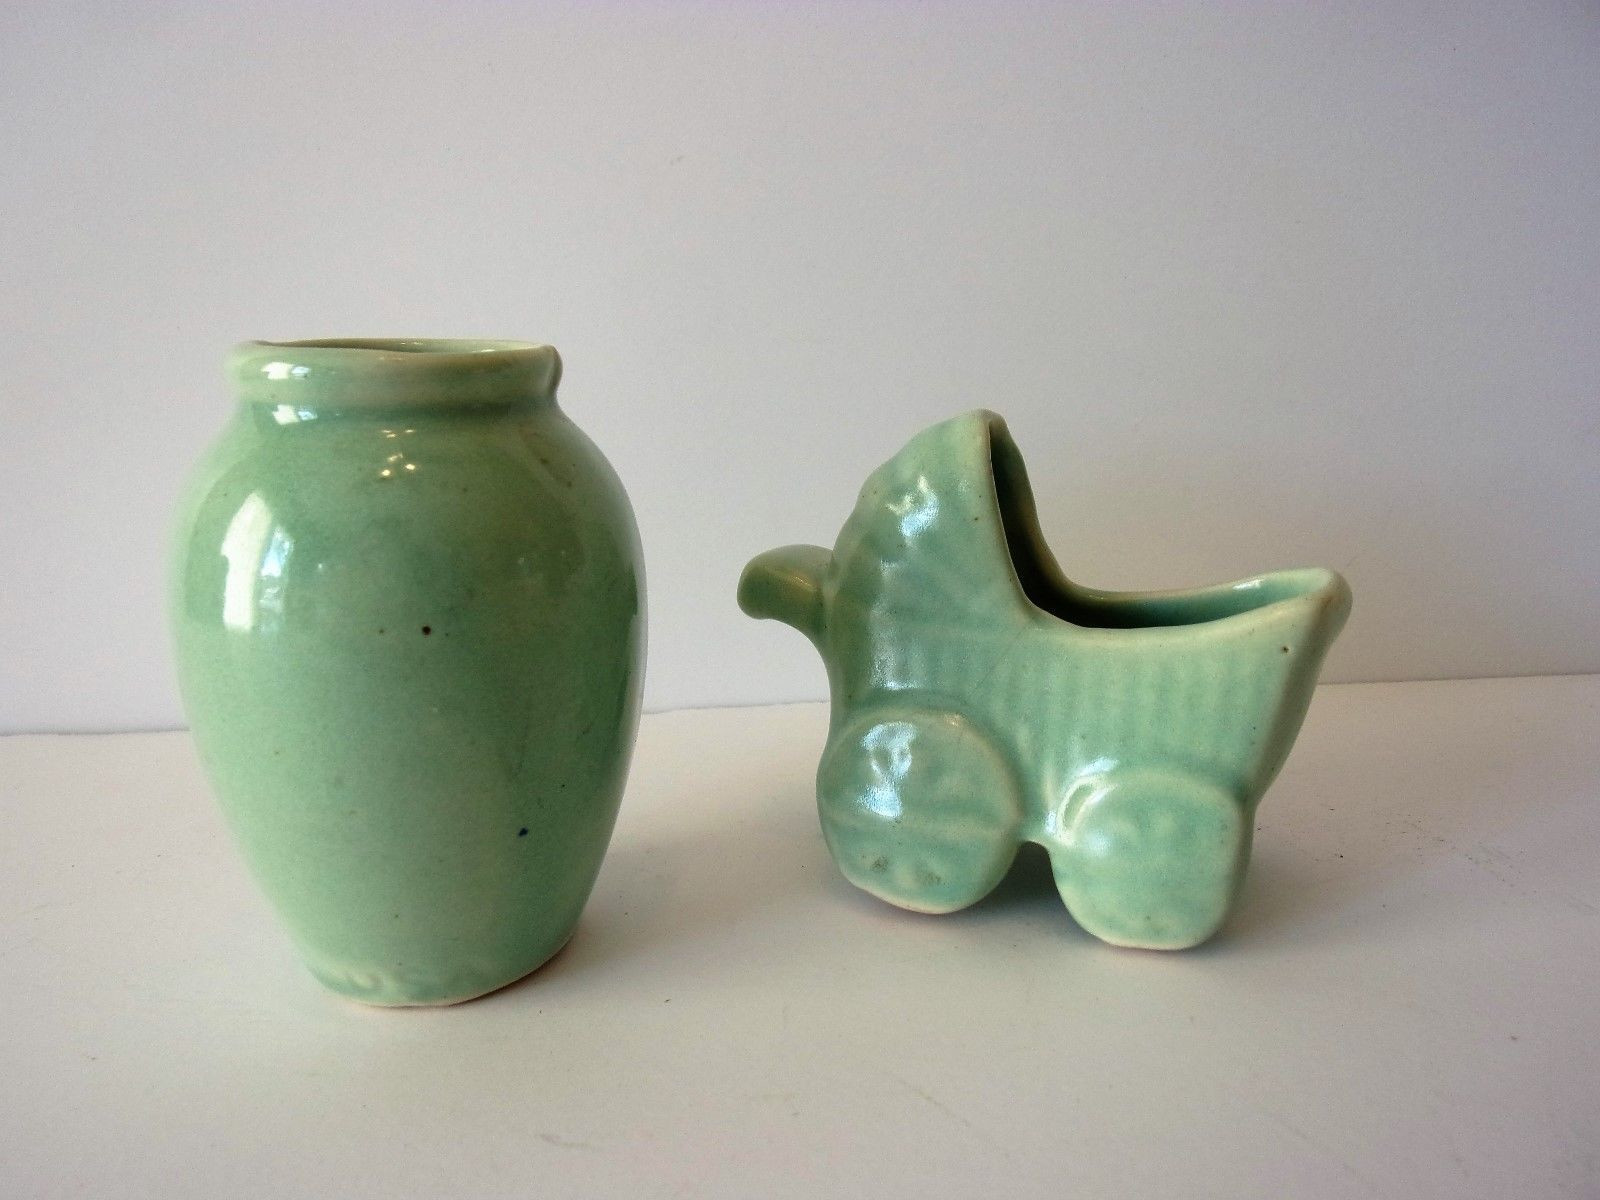 mccoy pottery flower vases of cool 2 vintage miniature mccoy shawnee pottery lot check more at regarding cool 2 vintage miniature mccoy shawnee pottery lot check more at http